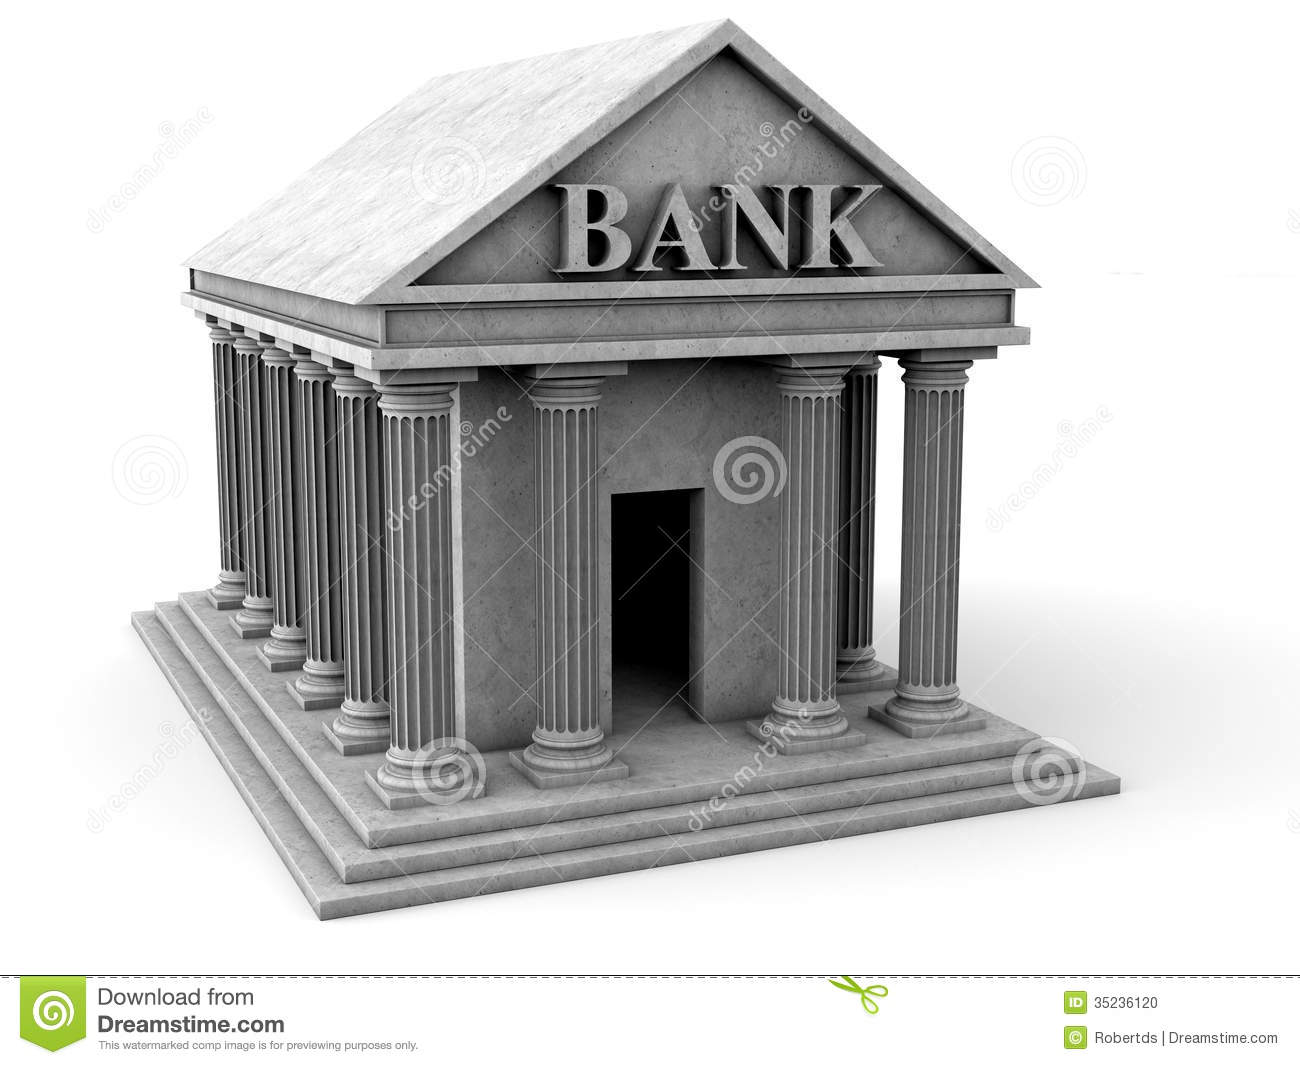 Bank icon clipart png download Bank clipart no background - ClipartFest png download